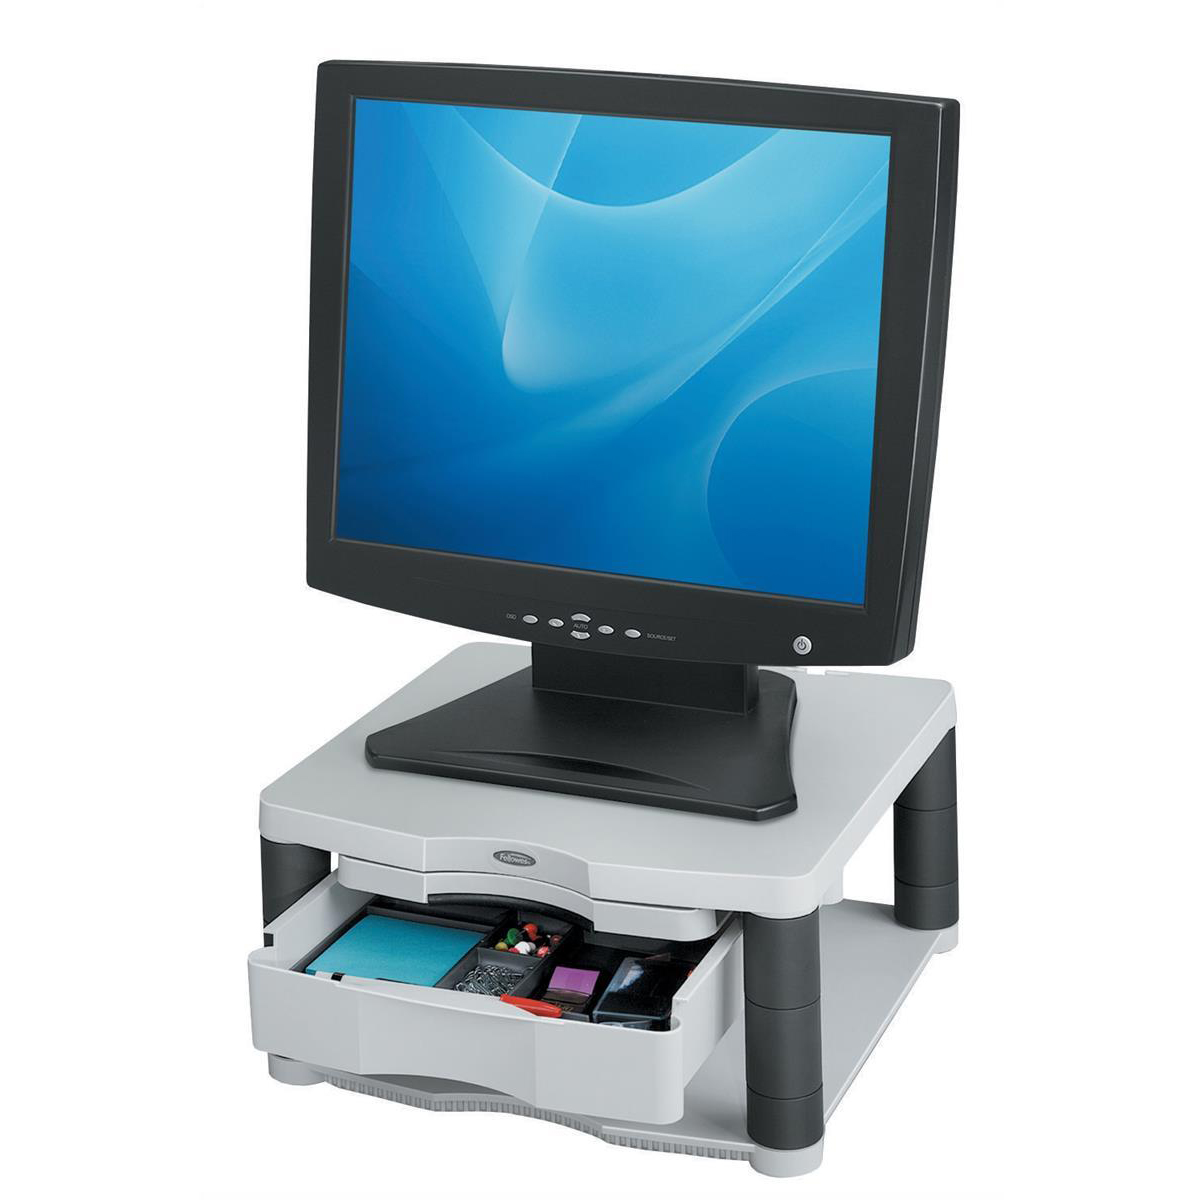 Monitor Stands